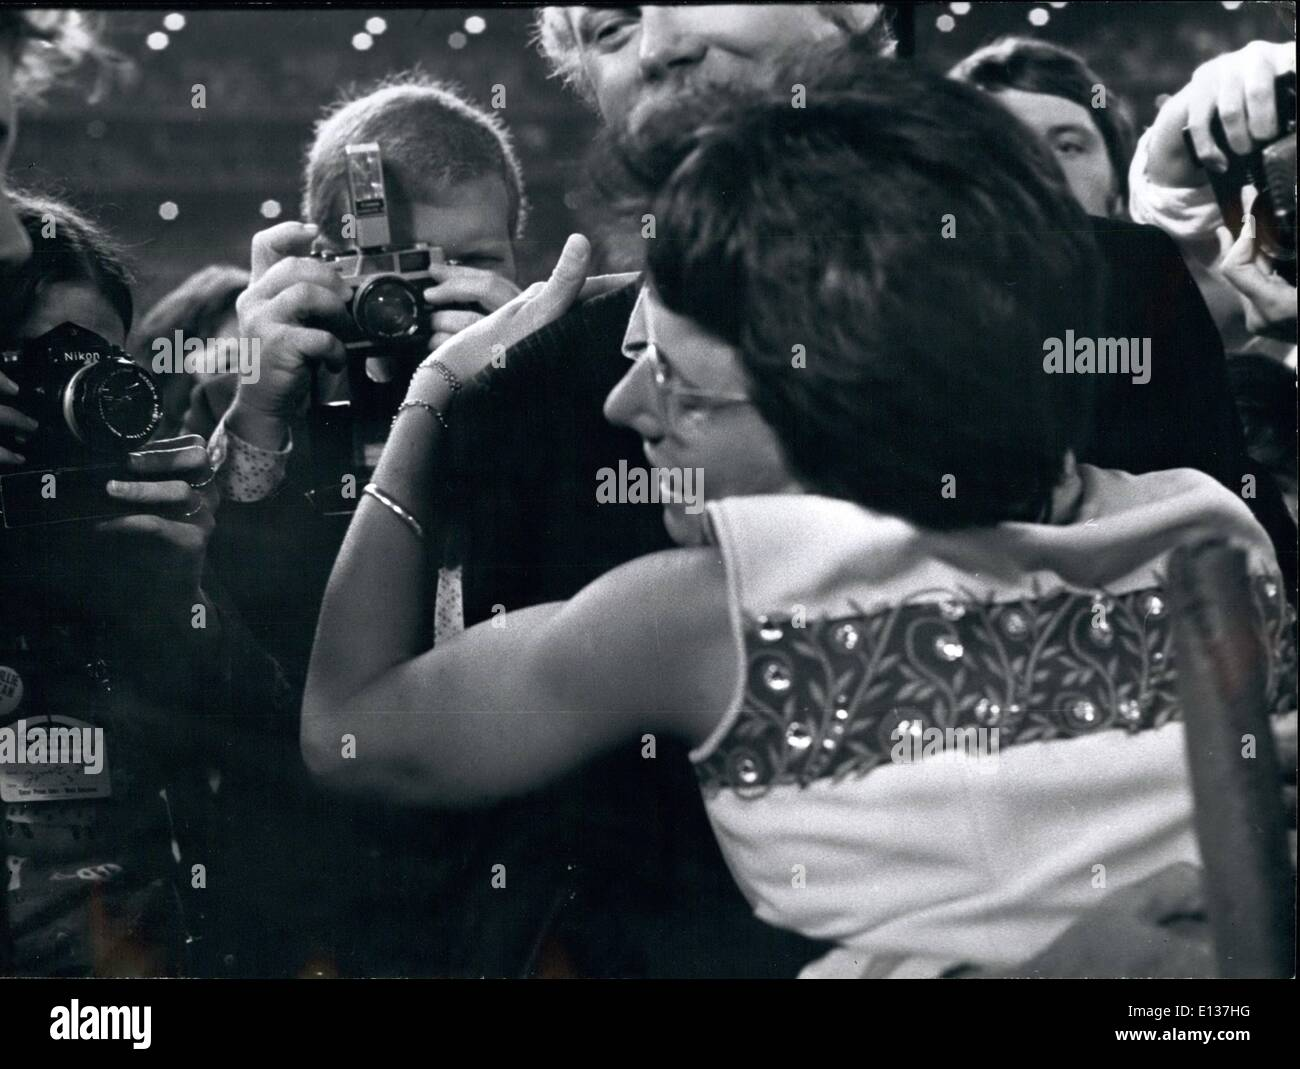 Feb. 29, 2012 - Houston Astrodome. King wins with husband Garry . - Stock Image